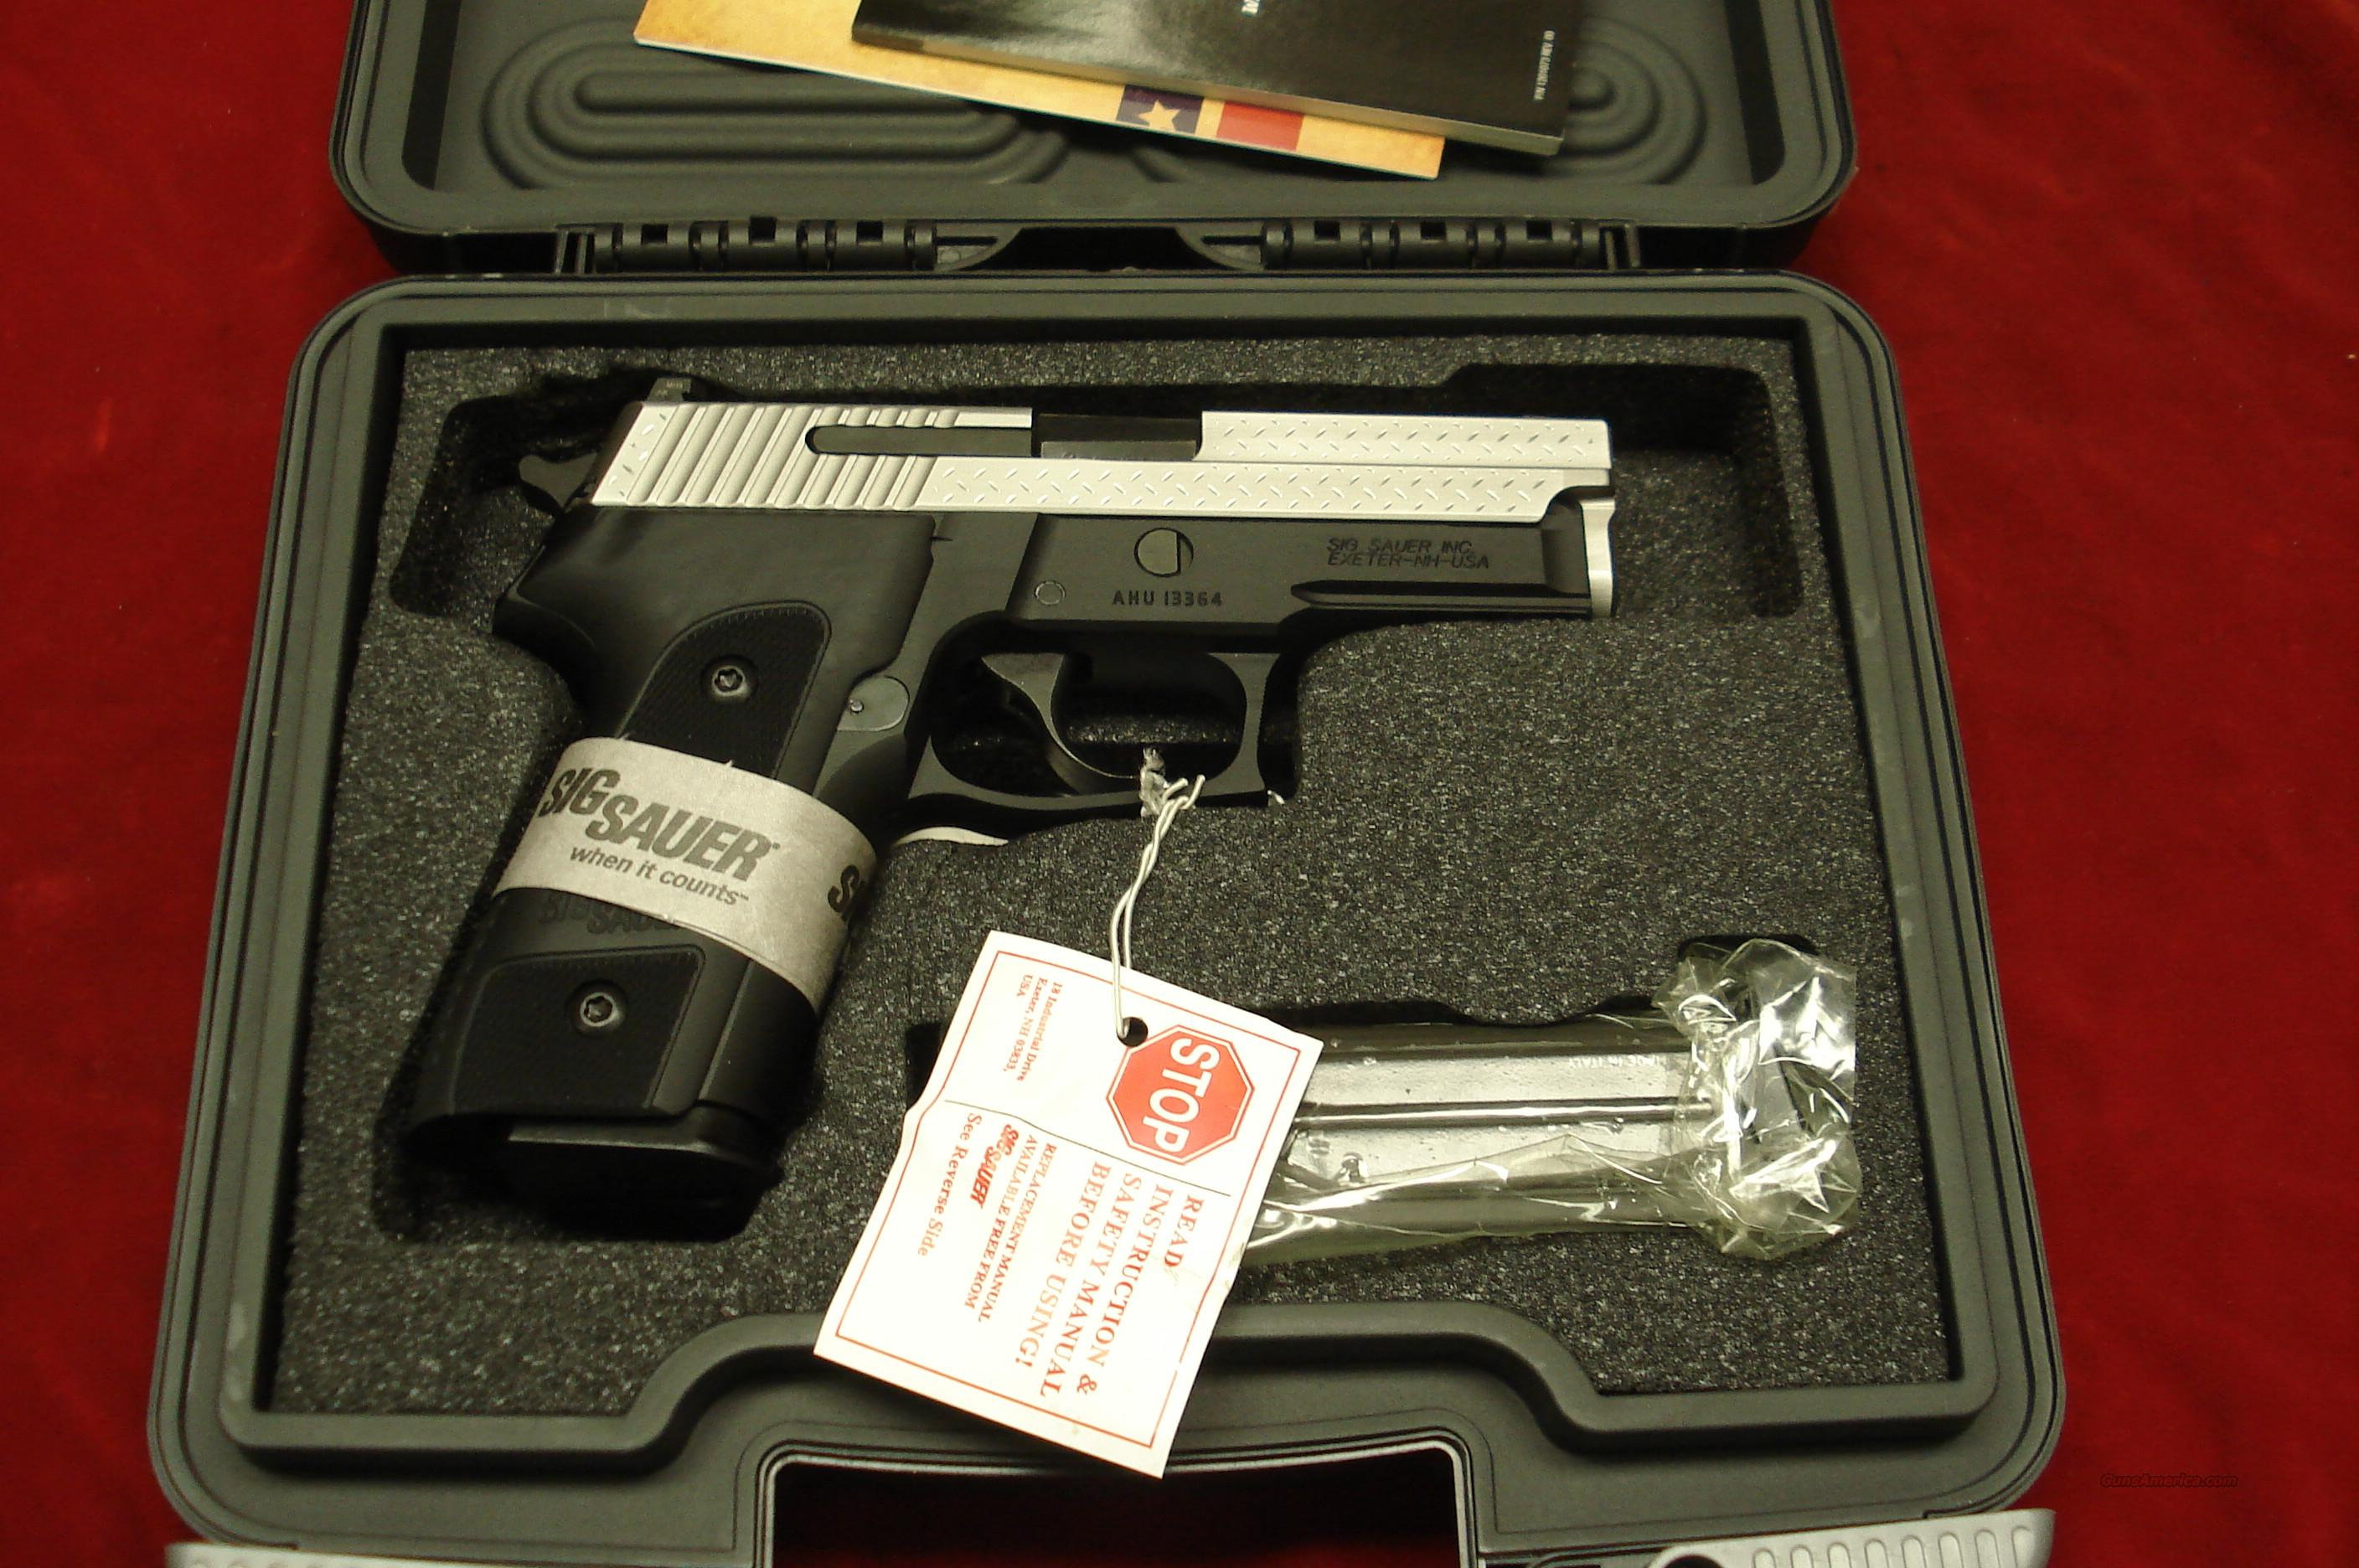 SIG SAUER P229 DIAMOND PLATE 9MM WITH NIGHT SIGHTS NEW   Guns > Pistols > Sig - Sauer/Sigarms Pistols > P229